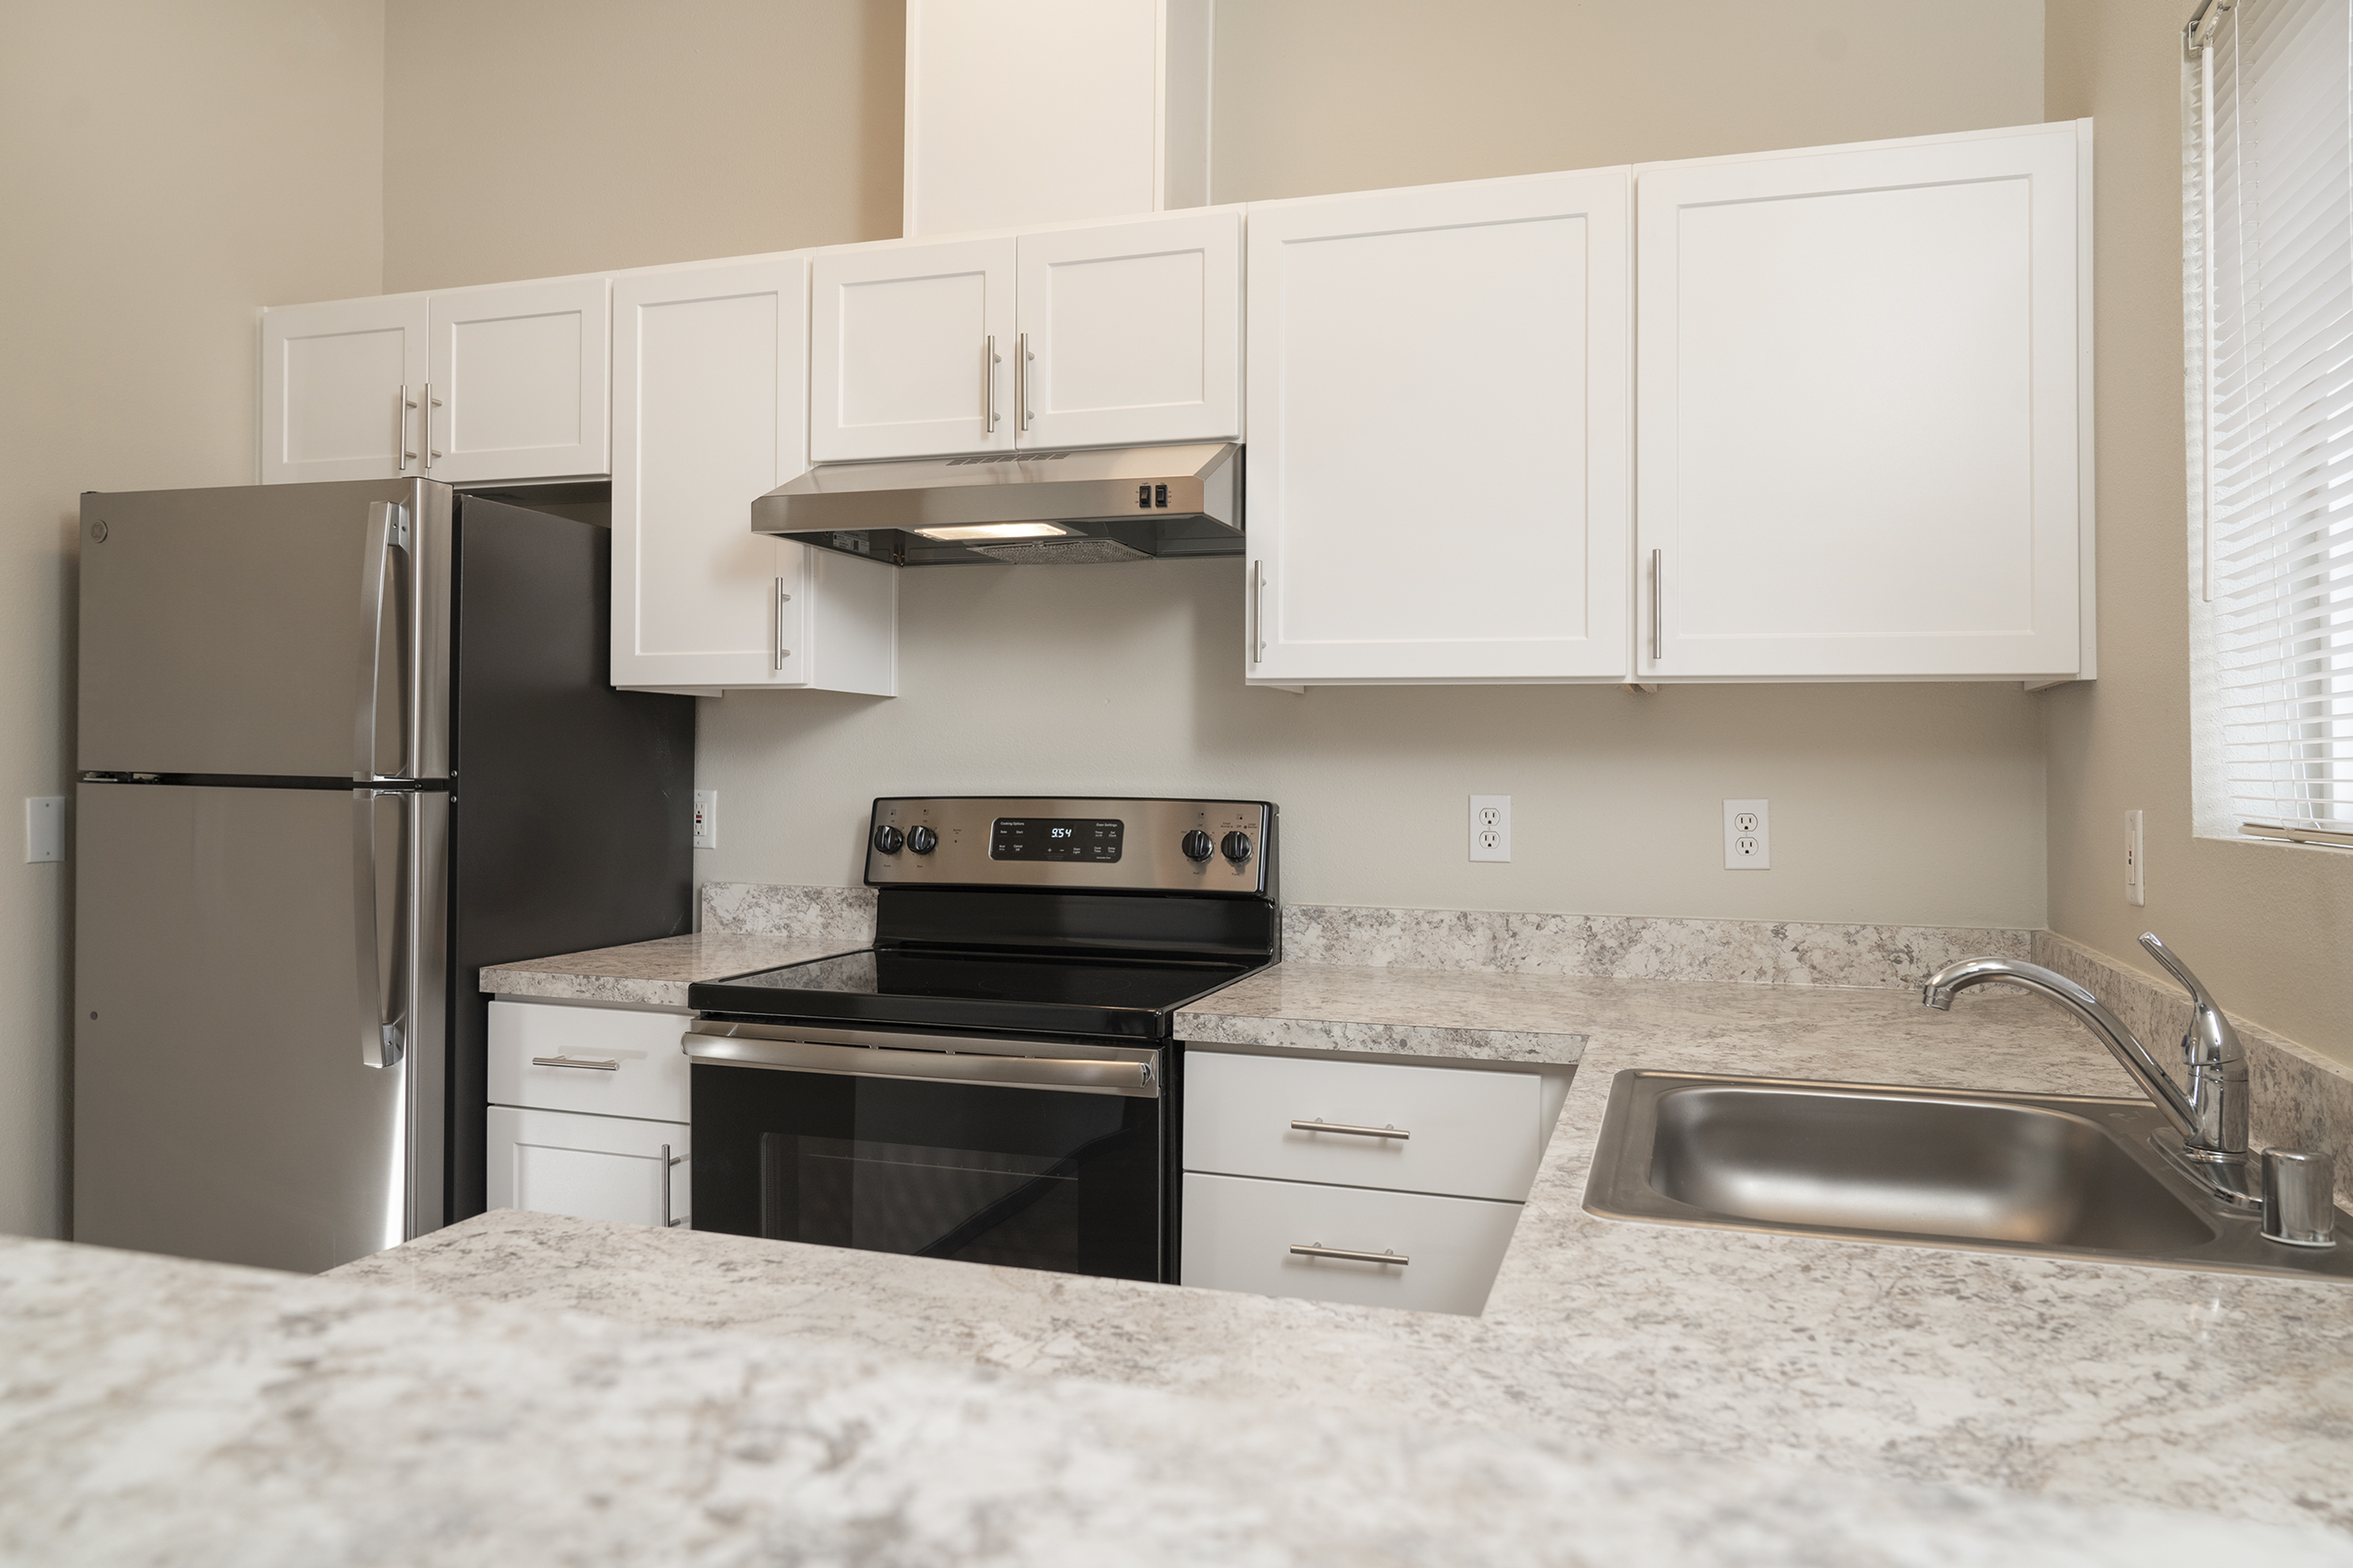 Image of Upgraded Cabinets and Millwork for Nantucket Gate